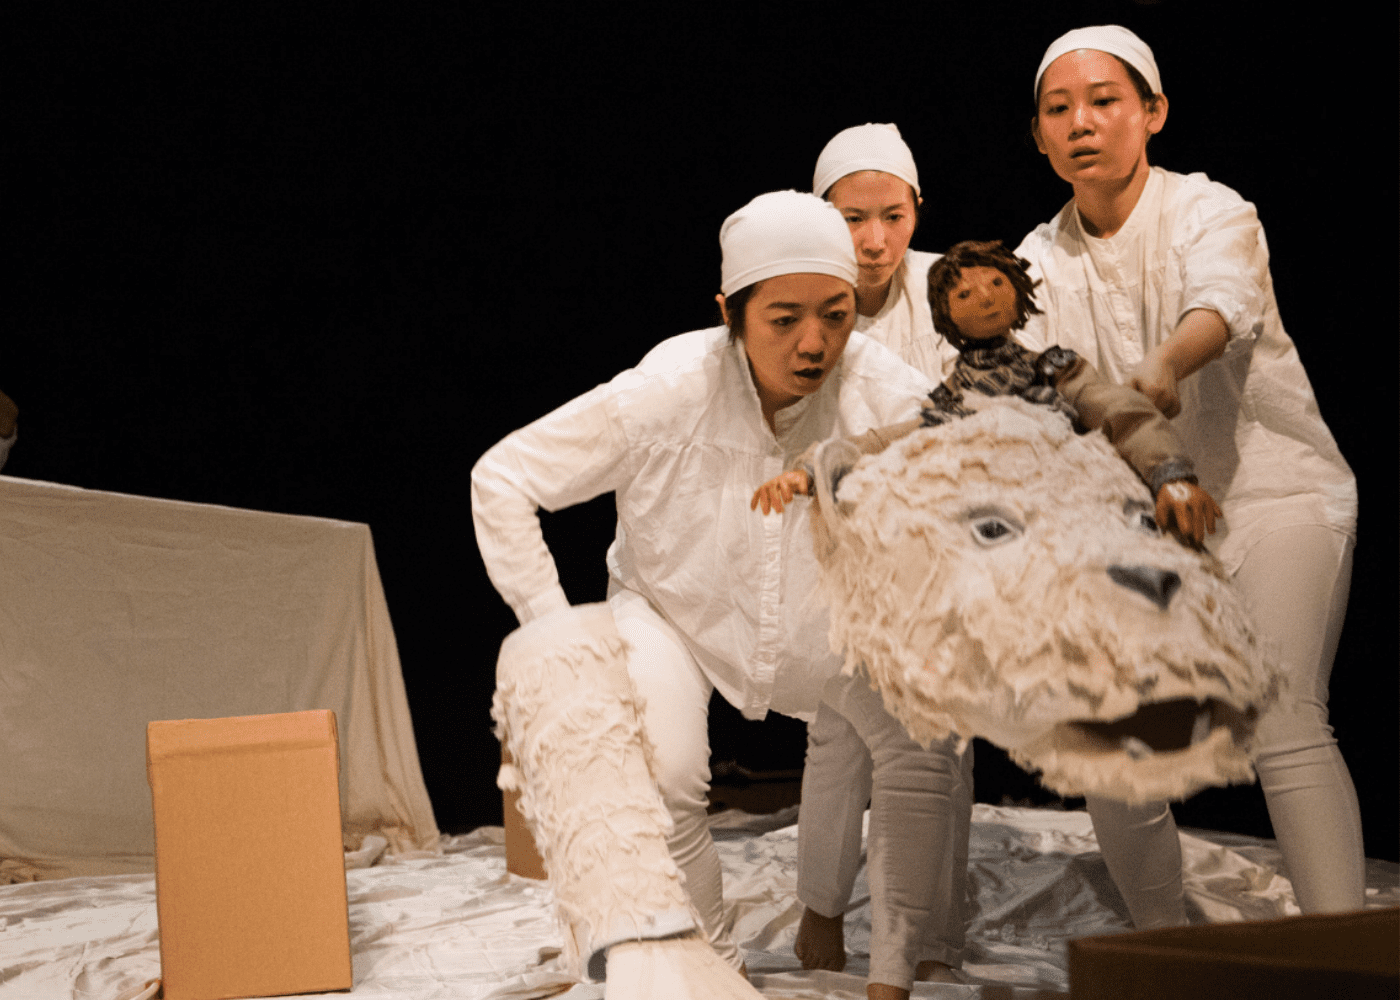 Gullinkambi – Puppetry Theatre for Children